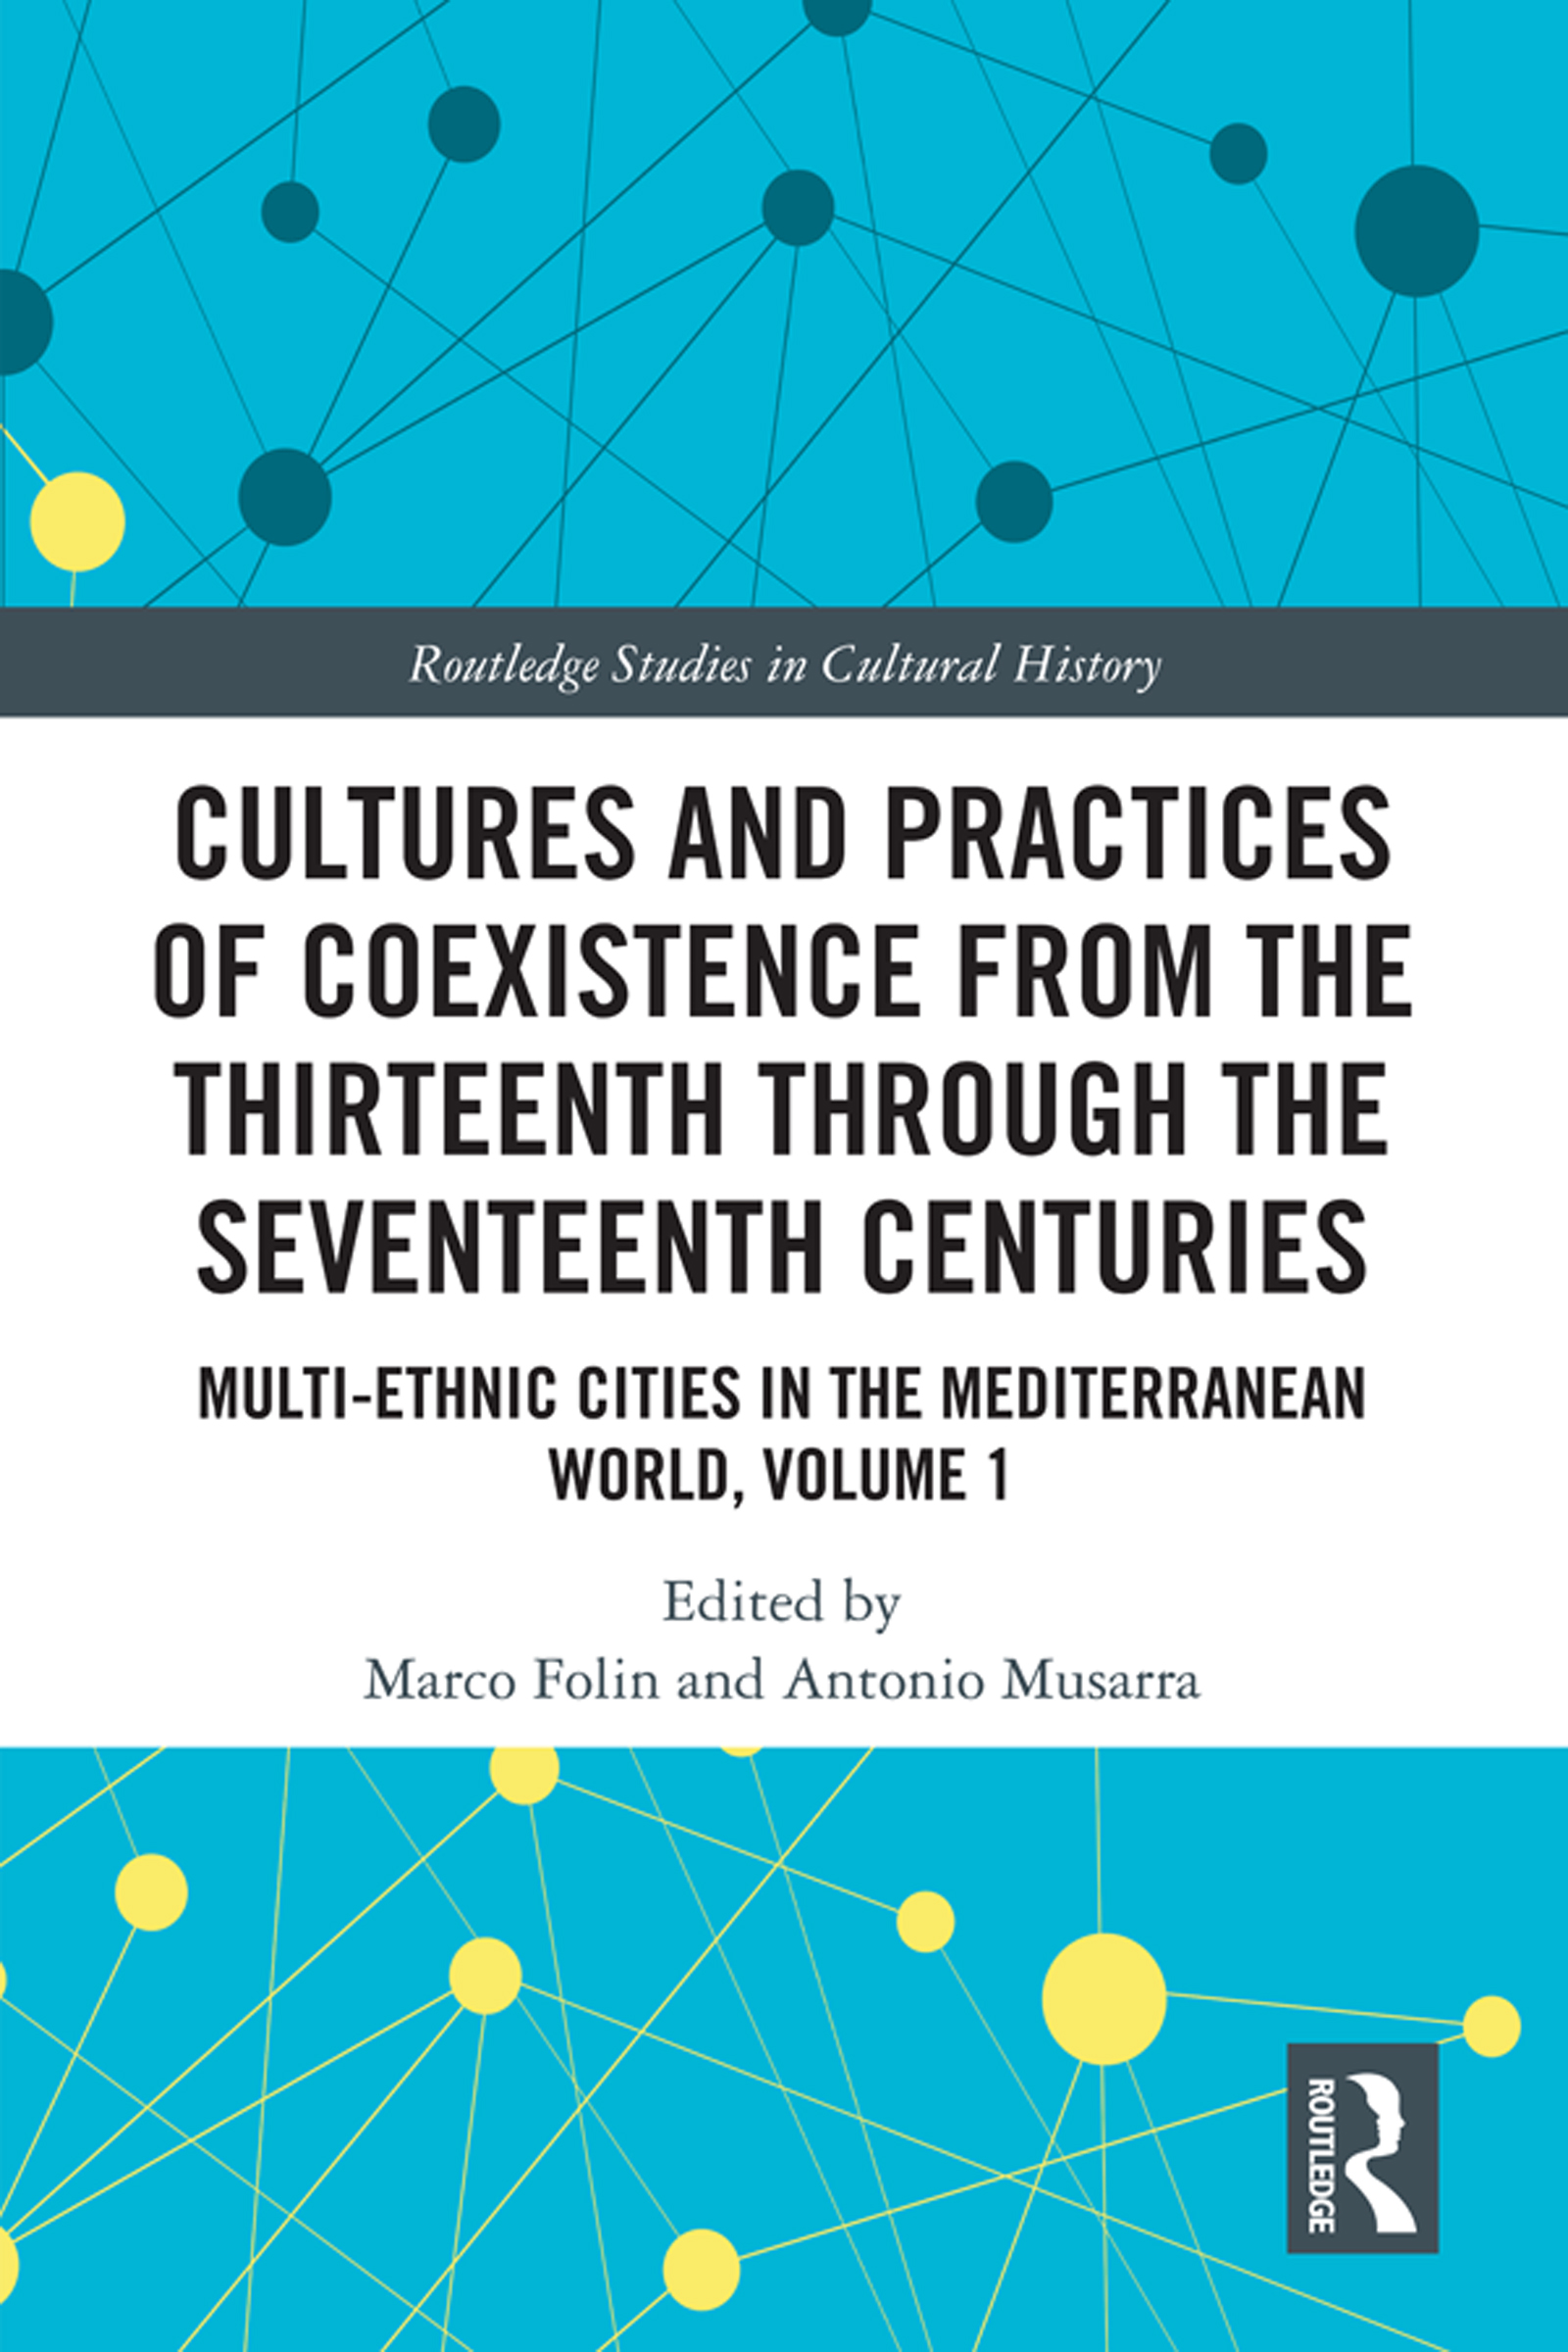 Cultures and Practices of Coexistence from the Thirteenth Through the Seventeenth Centuries